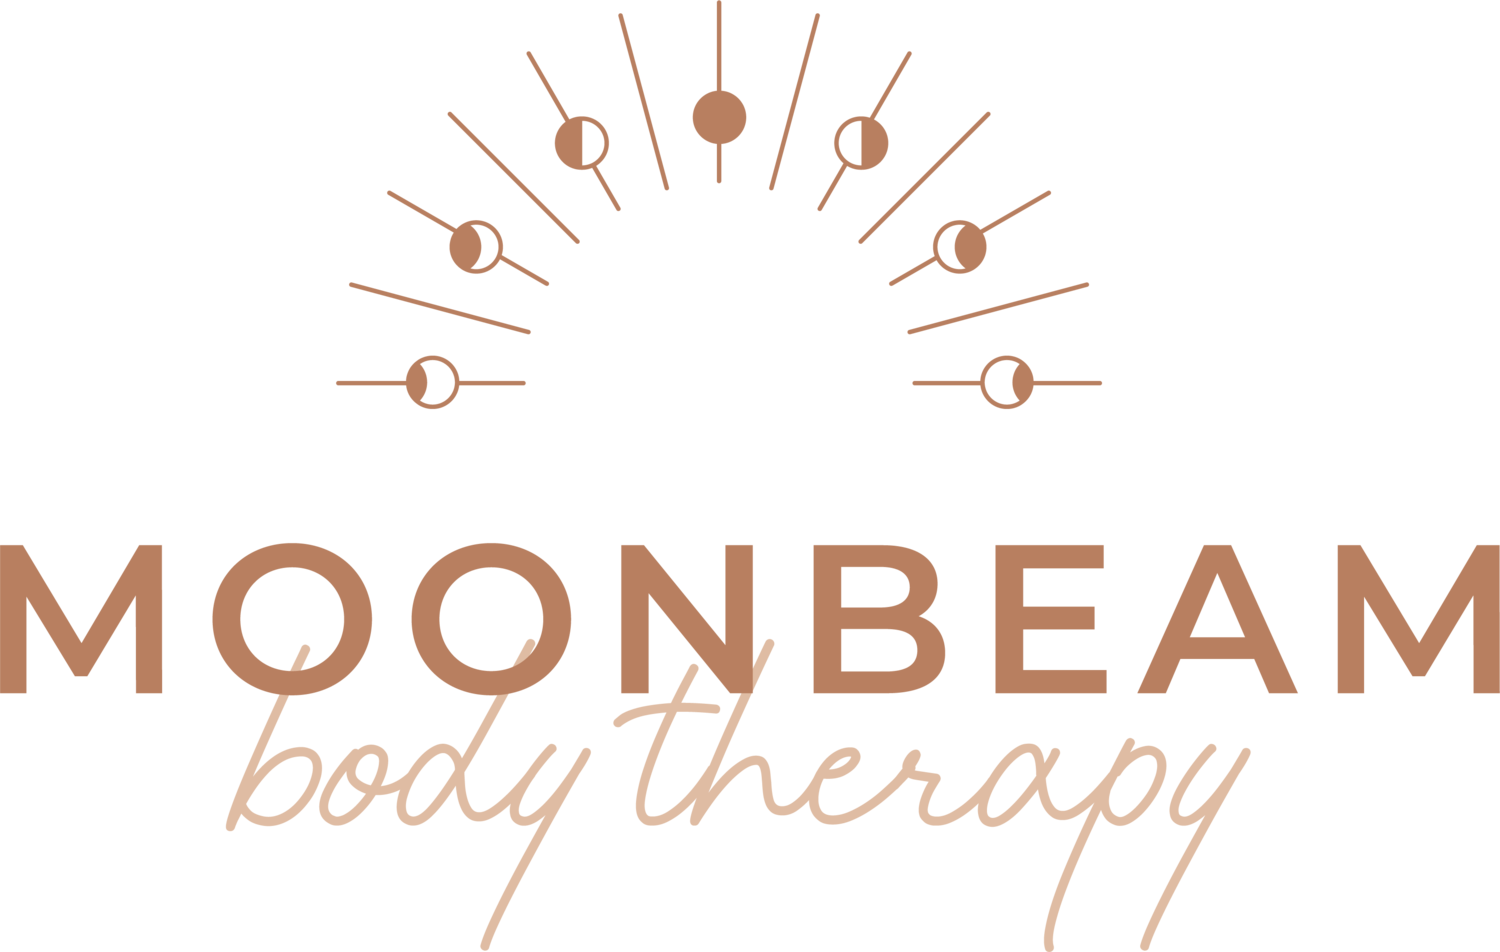 MOONBEAM BODY THERAPY